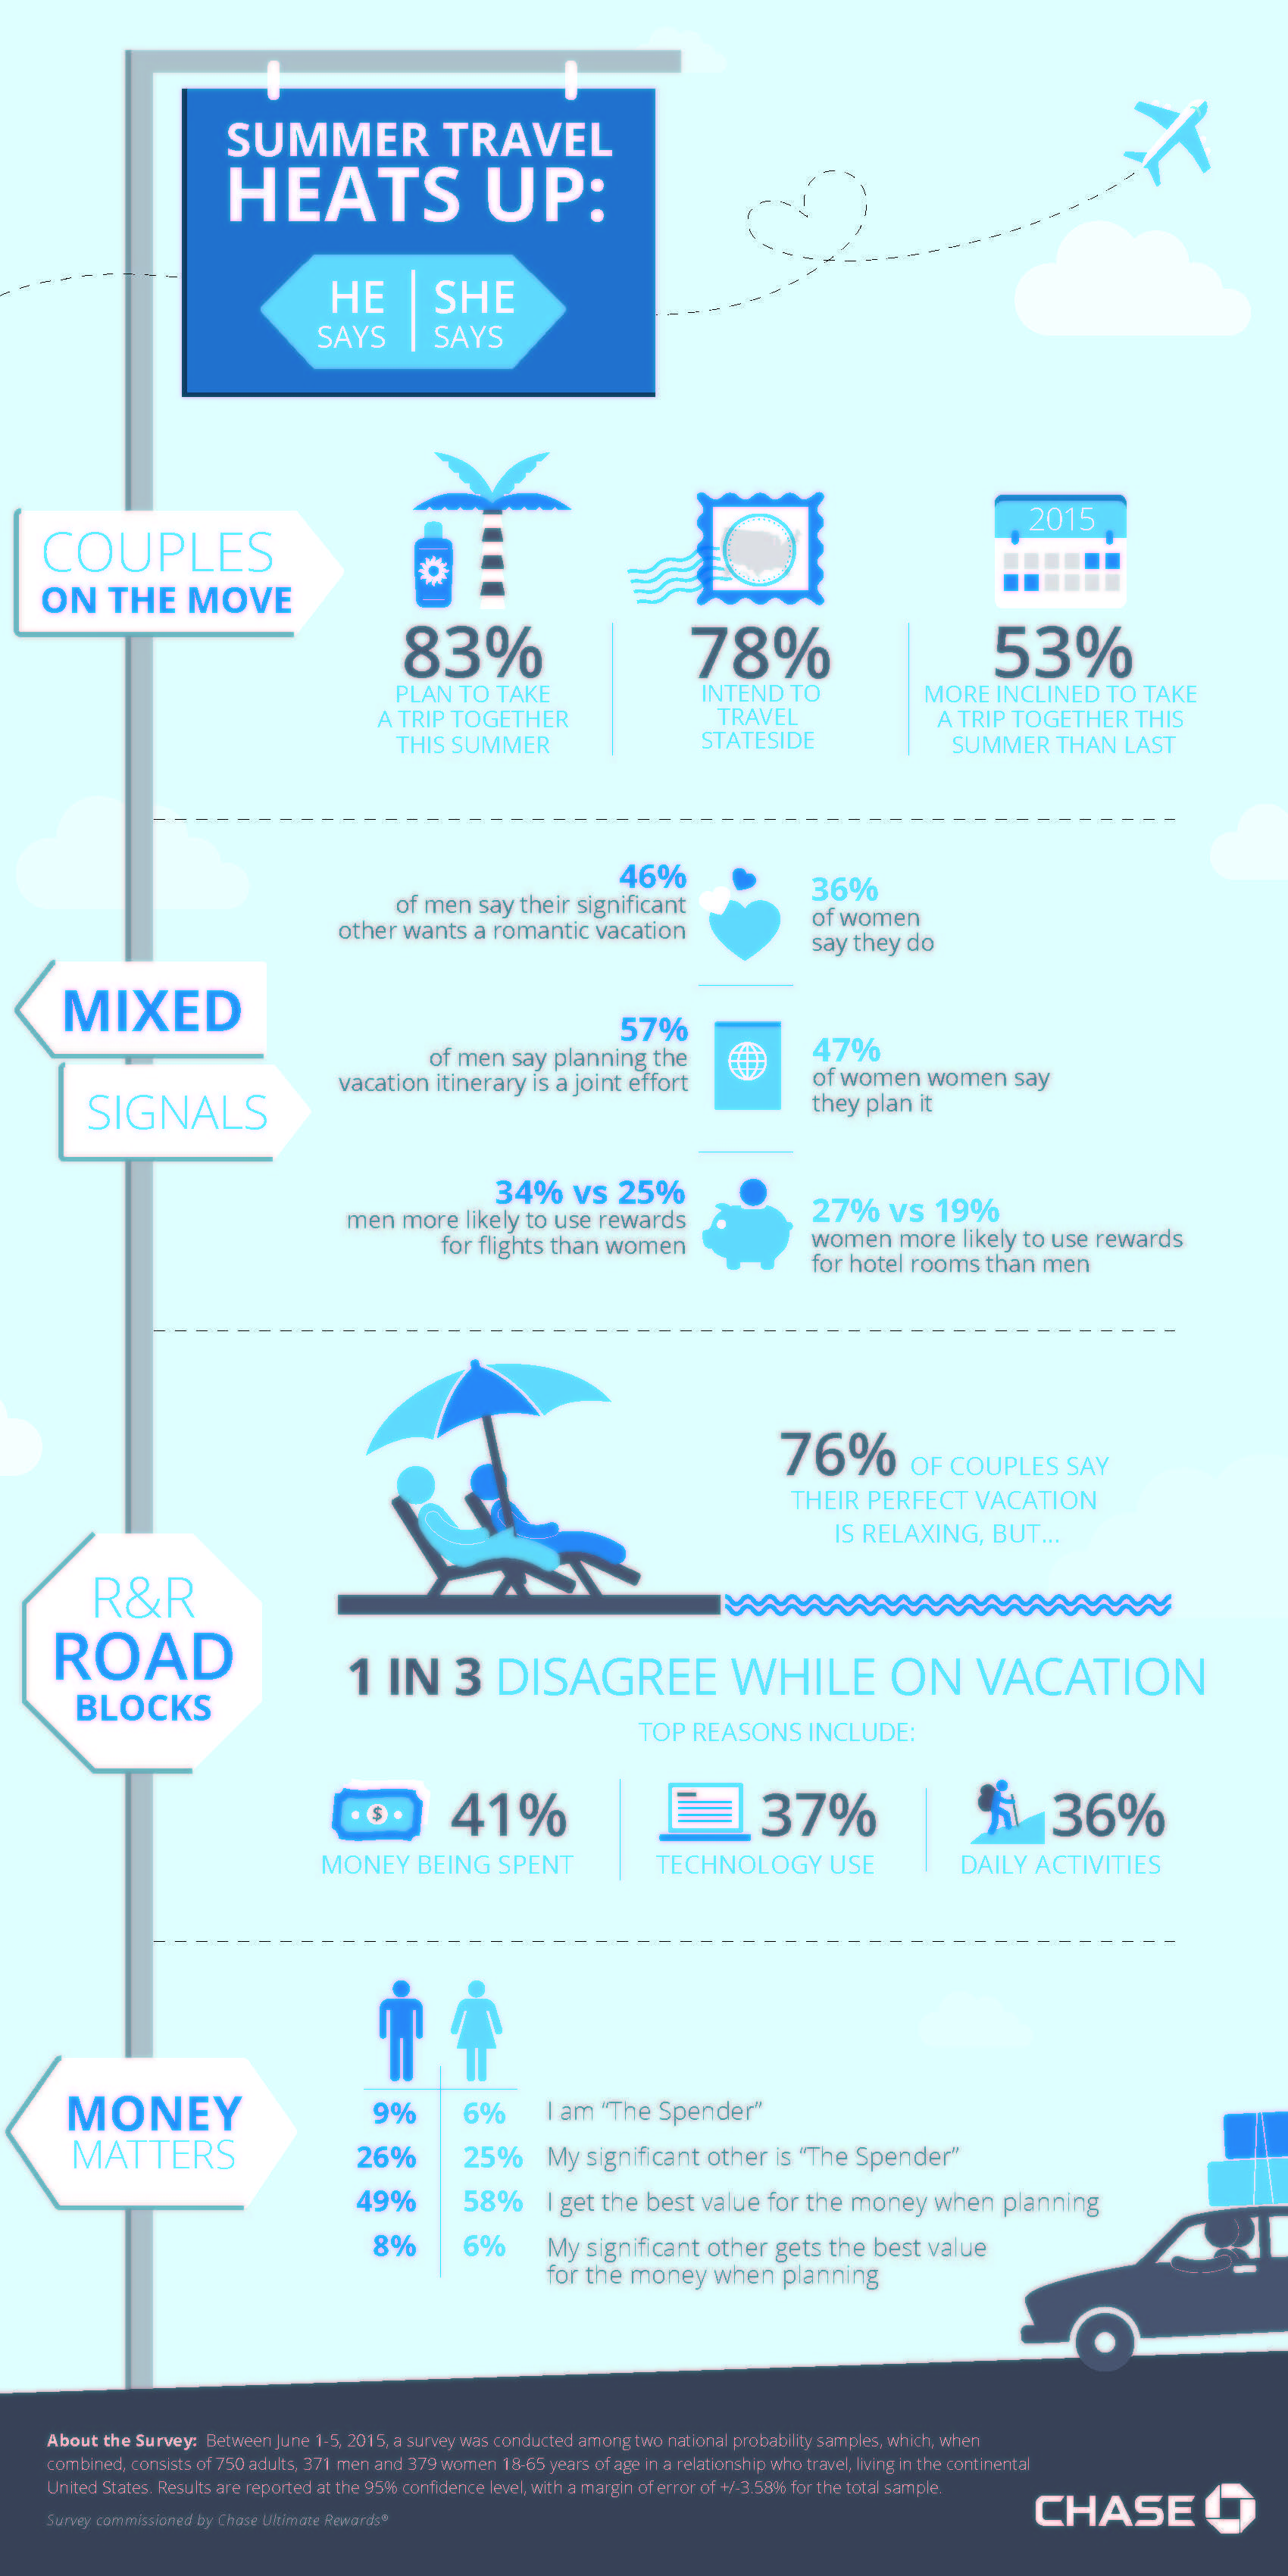 Couples_travel_infographic_chase_ultimate_rewards_-_approved__1_